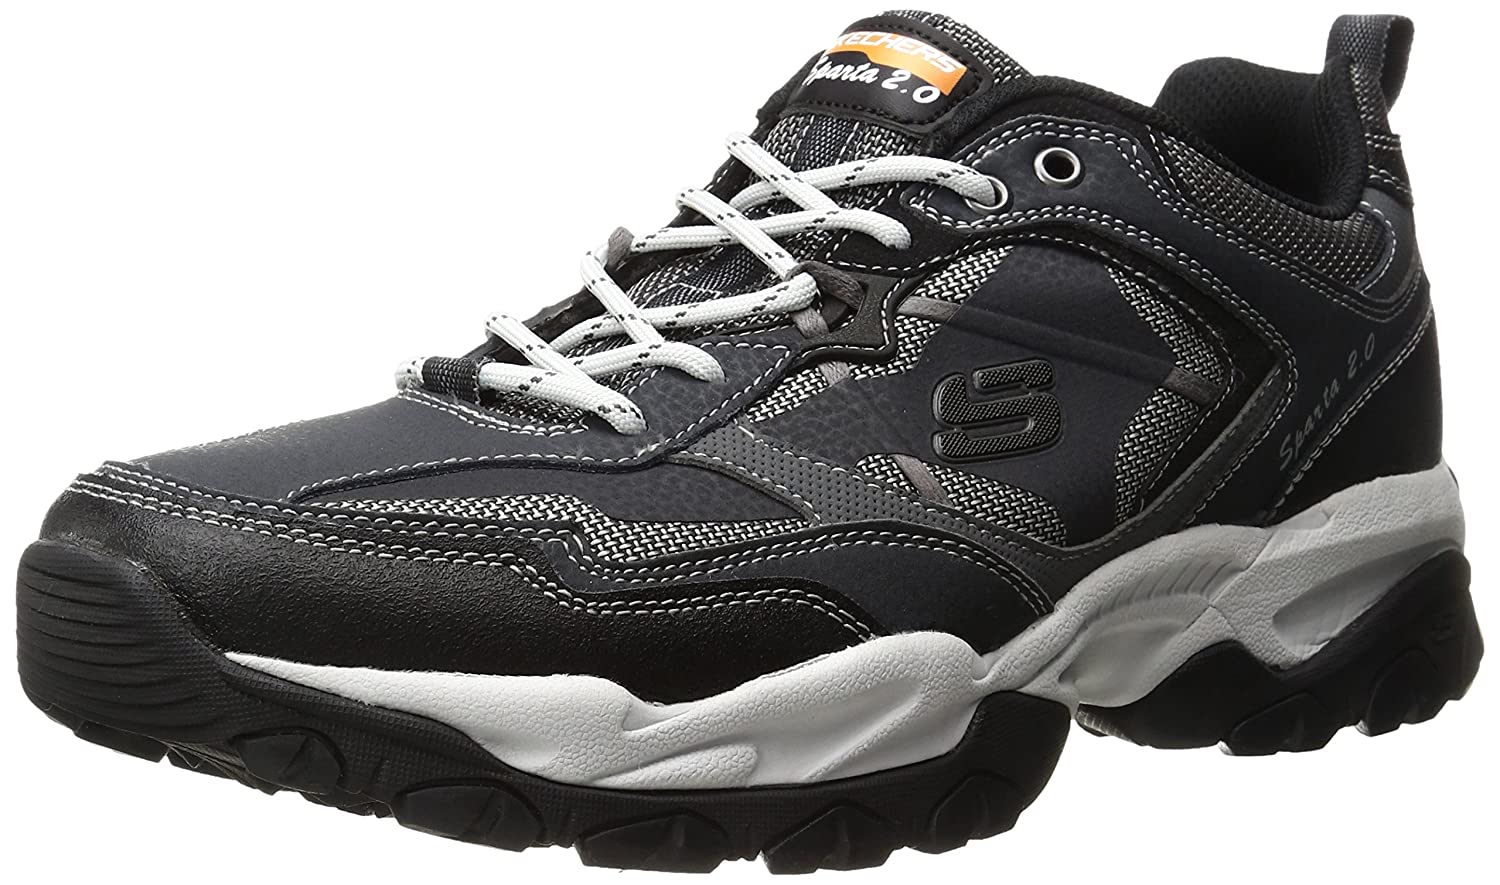 Men's Sparta 2.0 Memory Foam Trail Running Shoe | Products